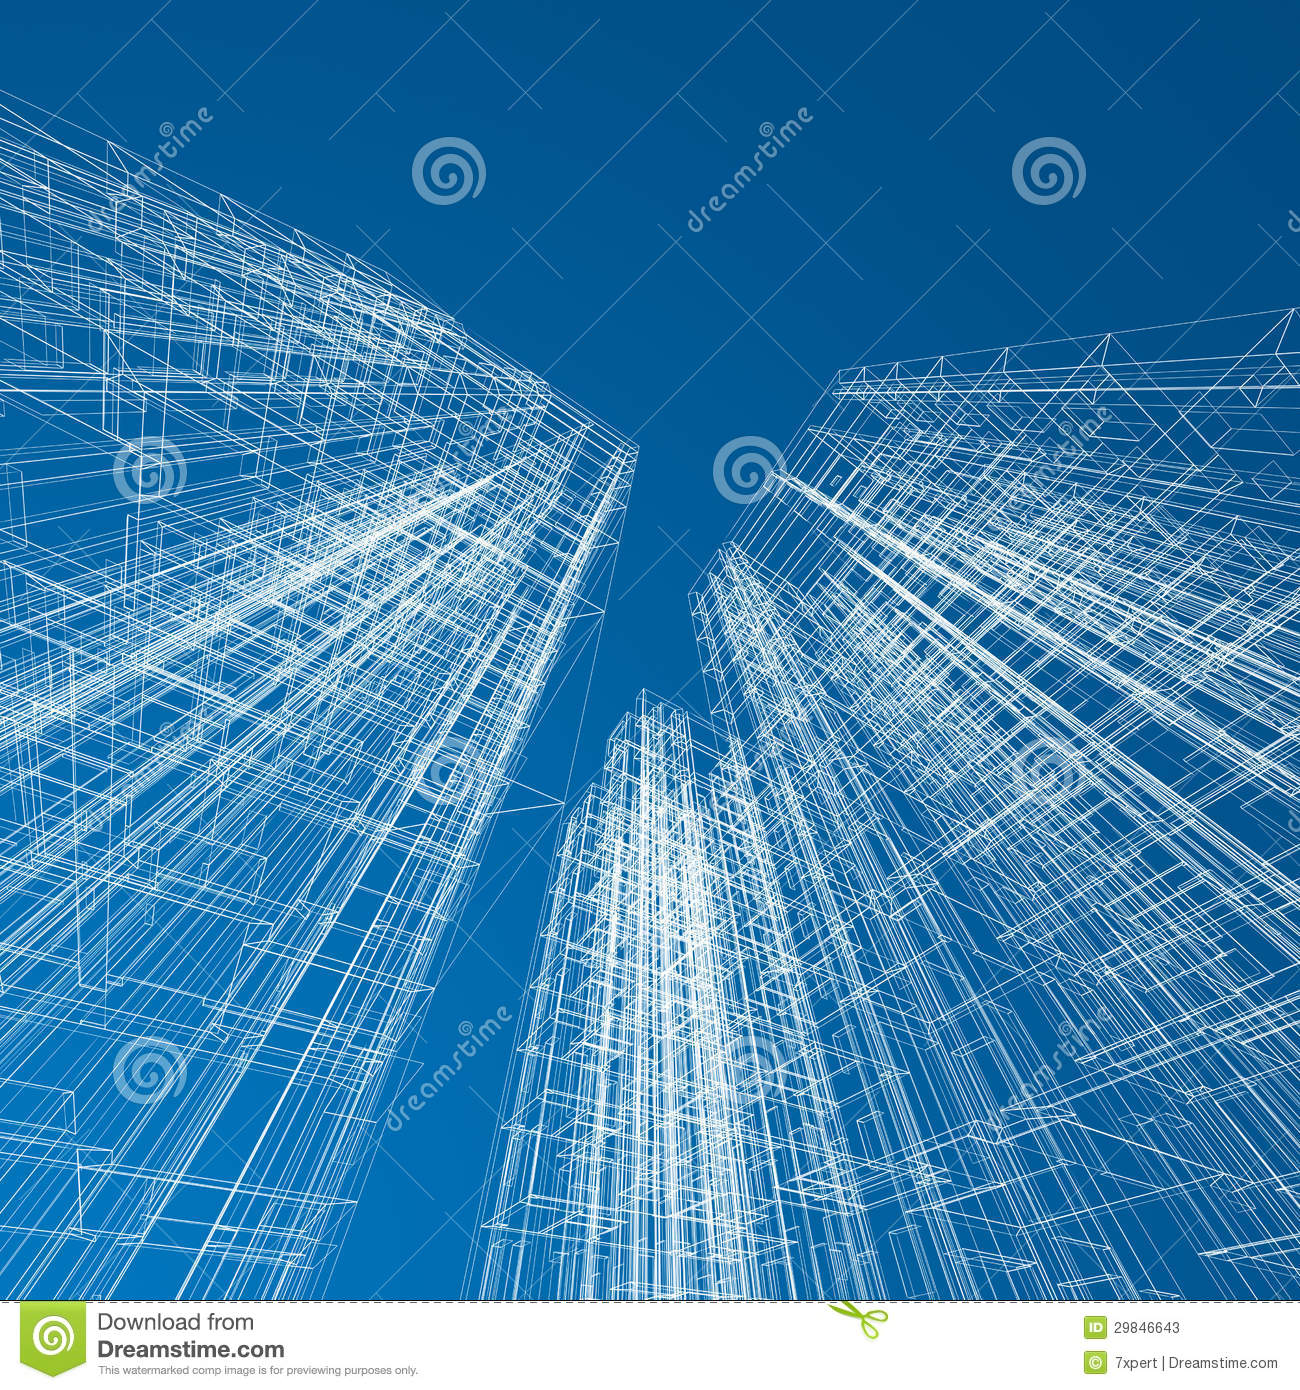 Concept skyscrapers blueprint stock photos image 29846643 for Architecture design blueprint